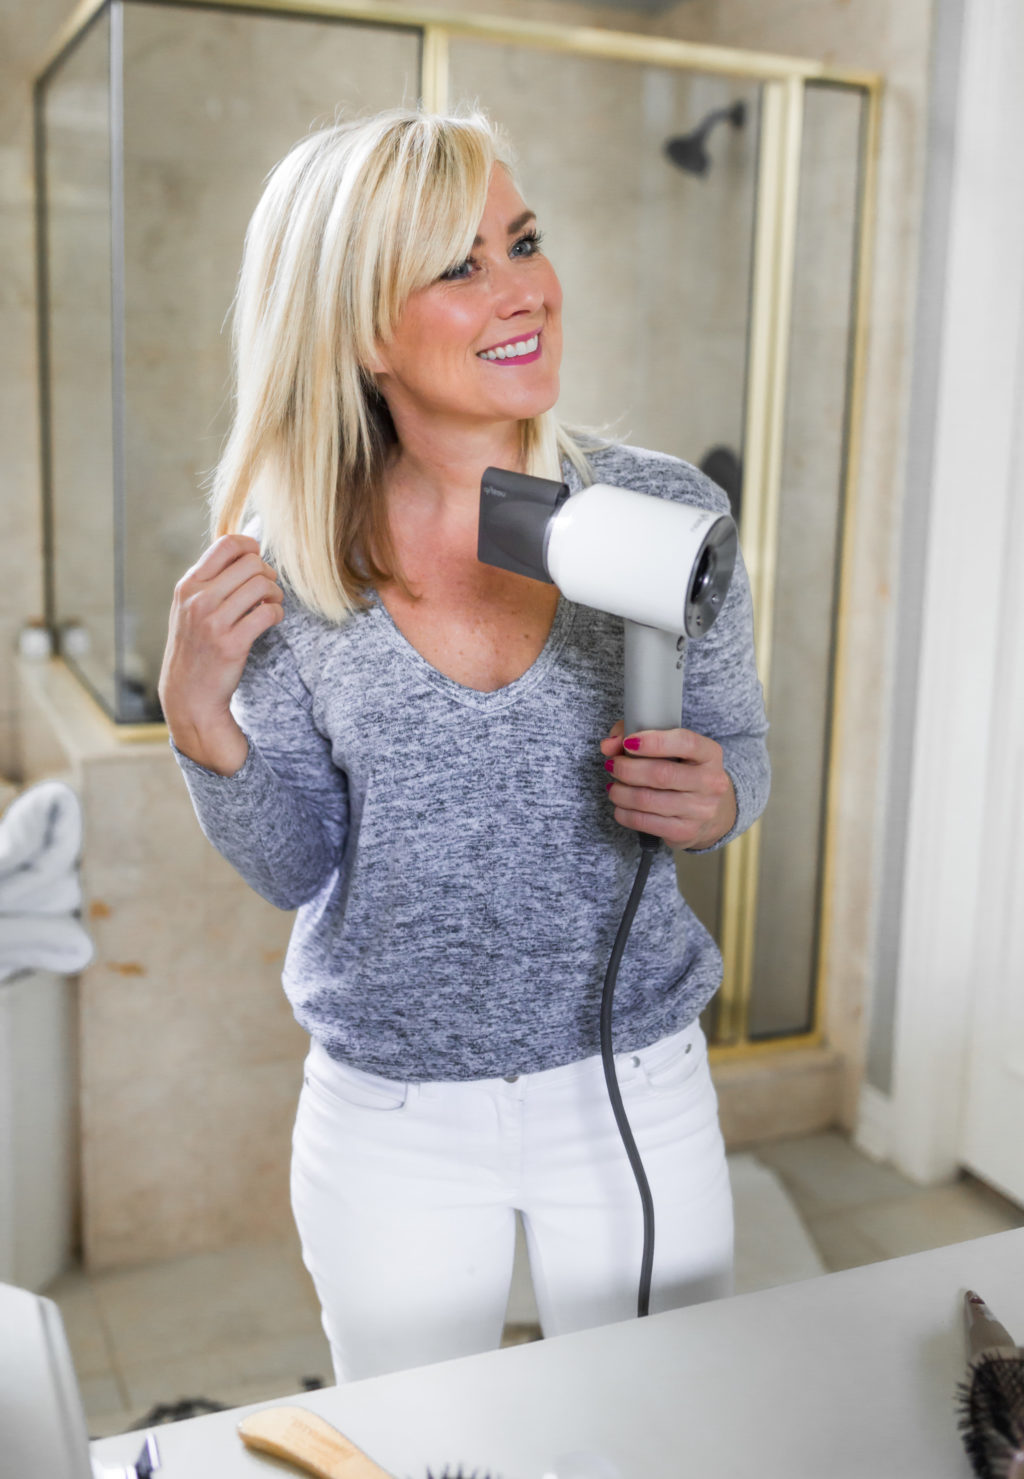 The Dyson Supersonic Hairdryer   Worth the Hype or Just Hot